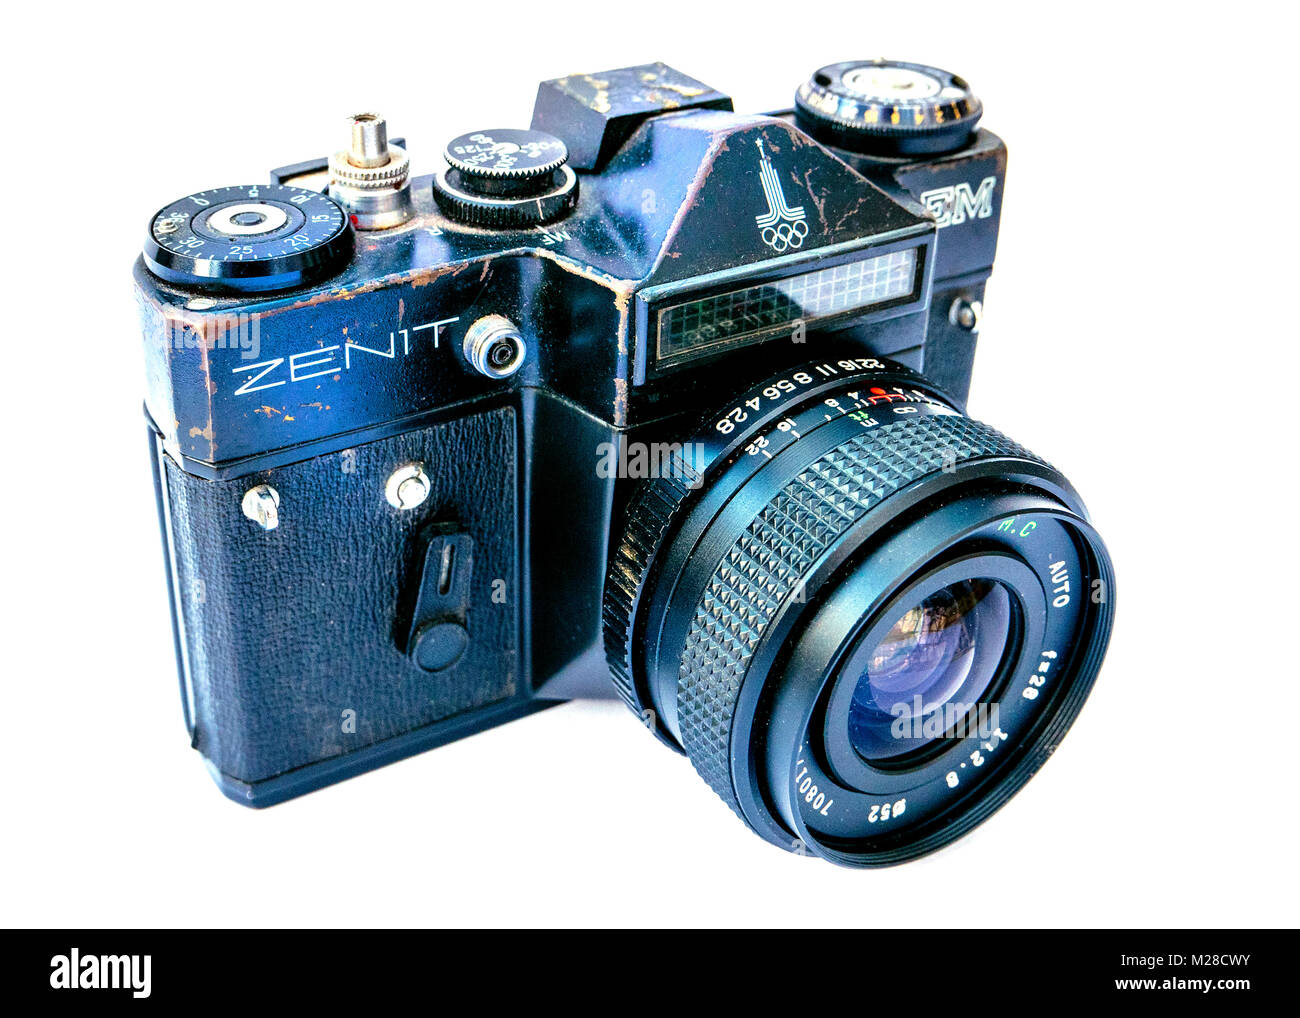 A battered and well used Russian Zenith EM Camera - Stock Image